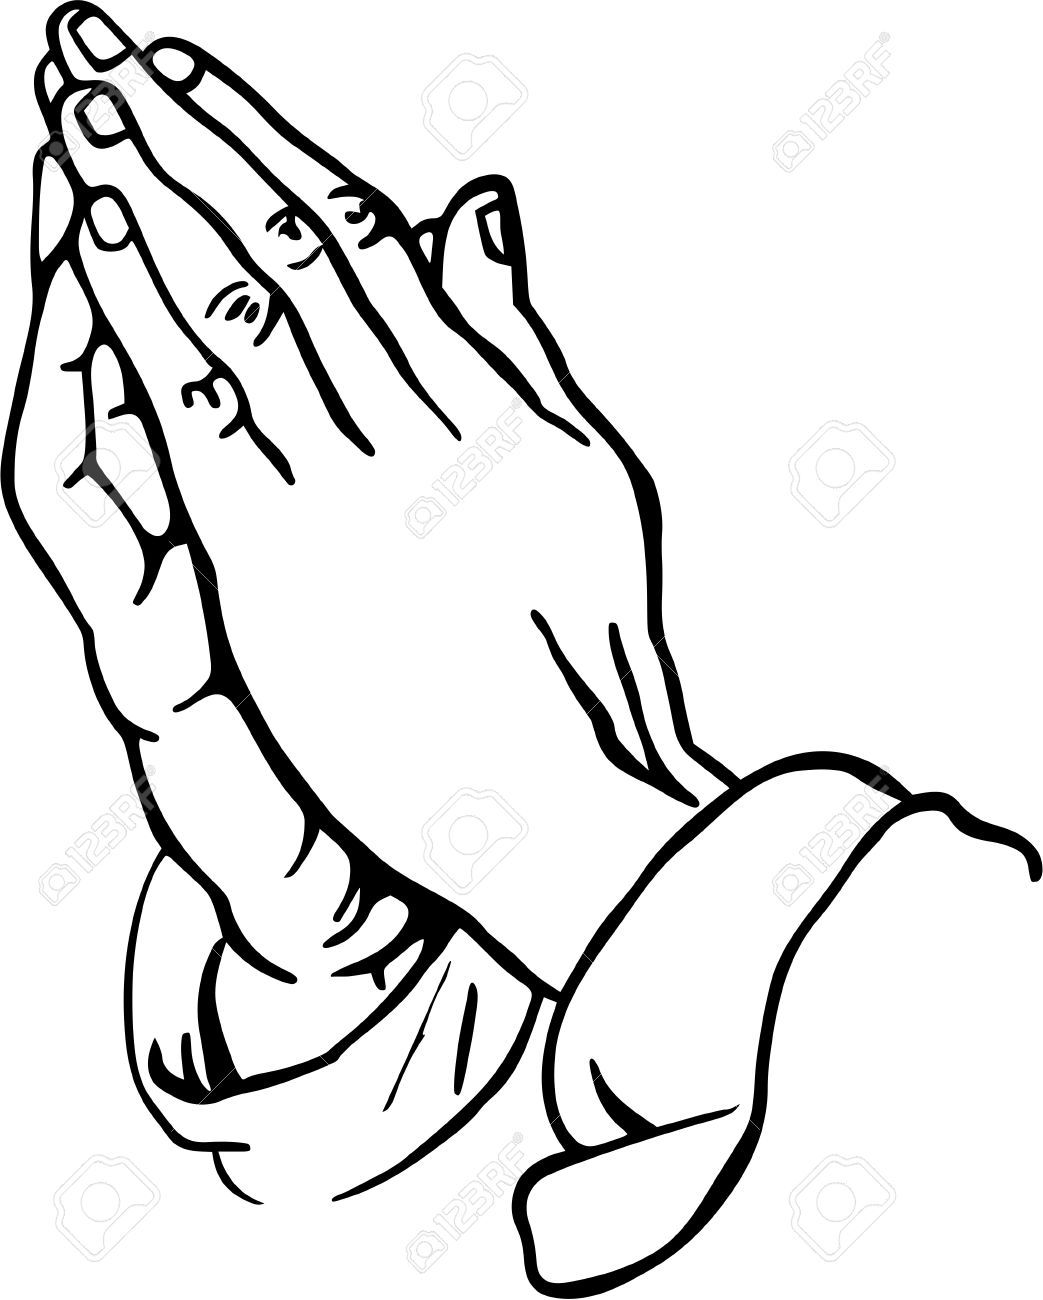 praying hands clipart stock photo picture and royalty free image rh pinterest com  prayer hands clipart black and white